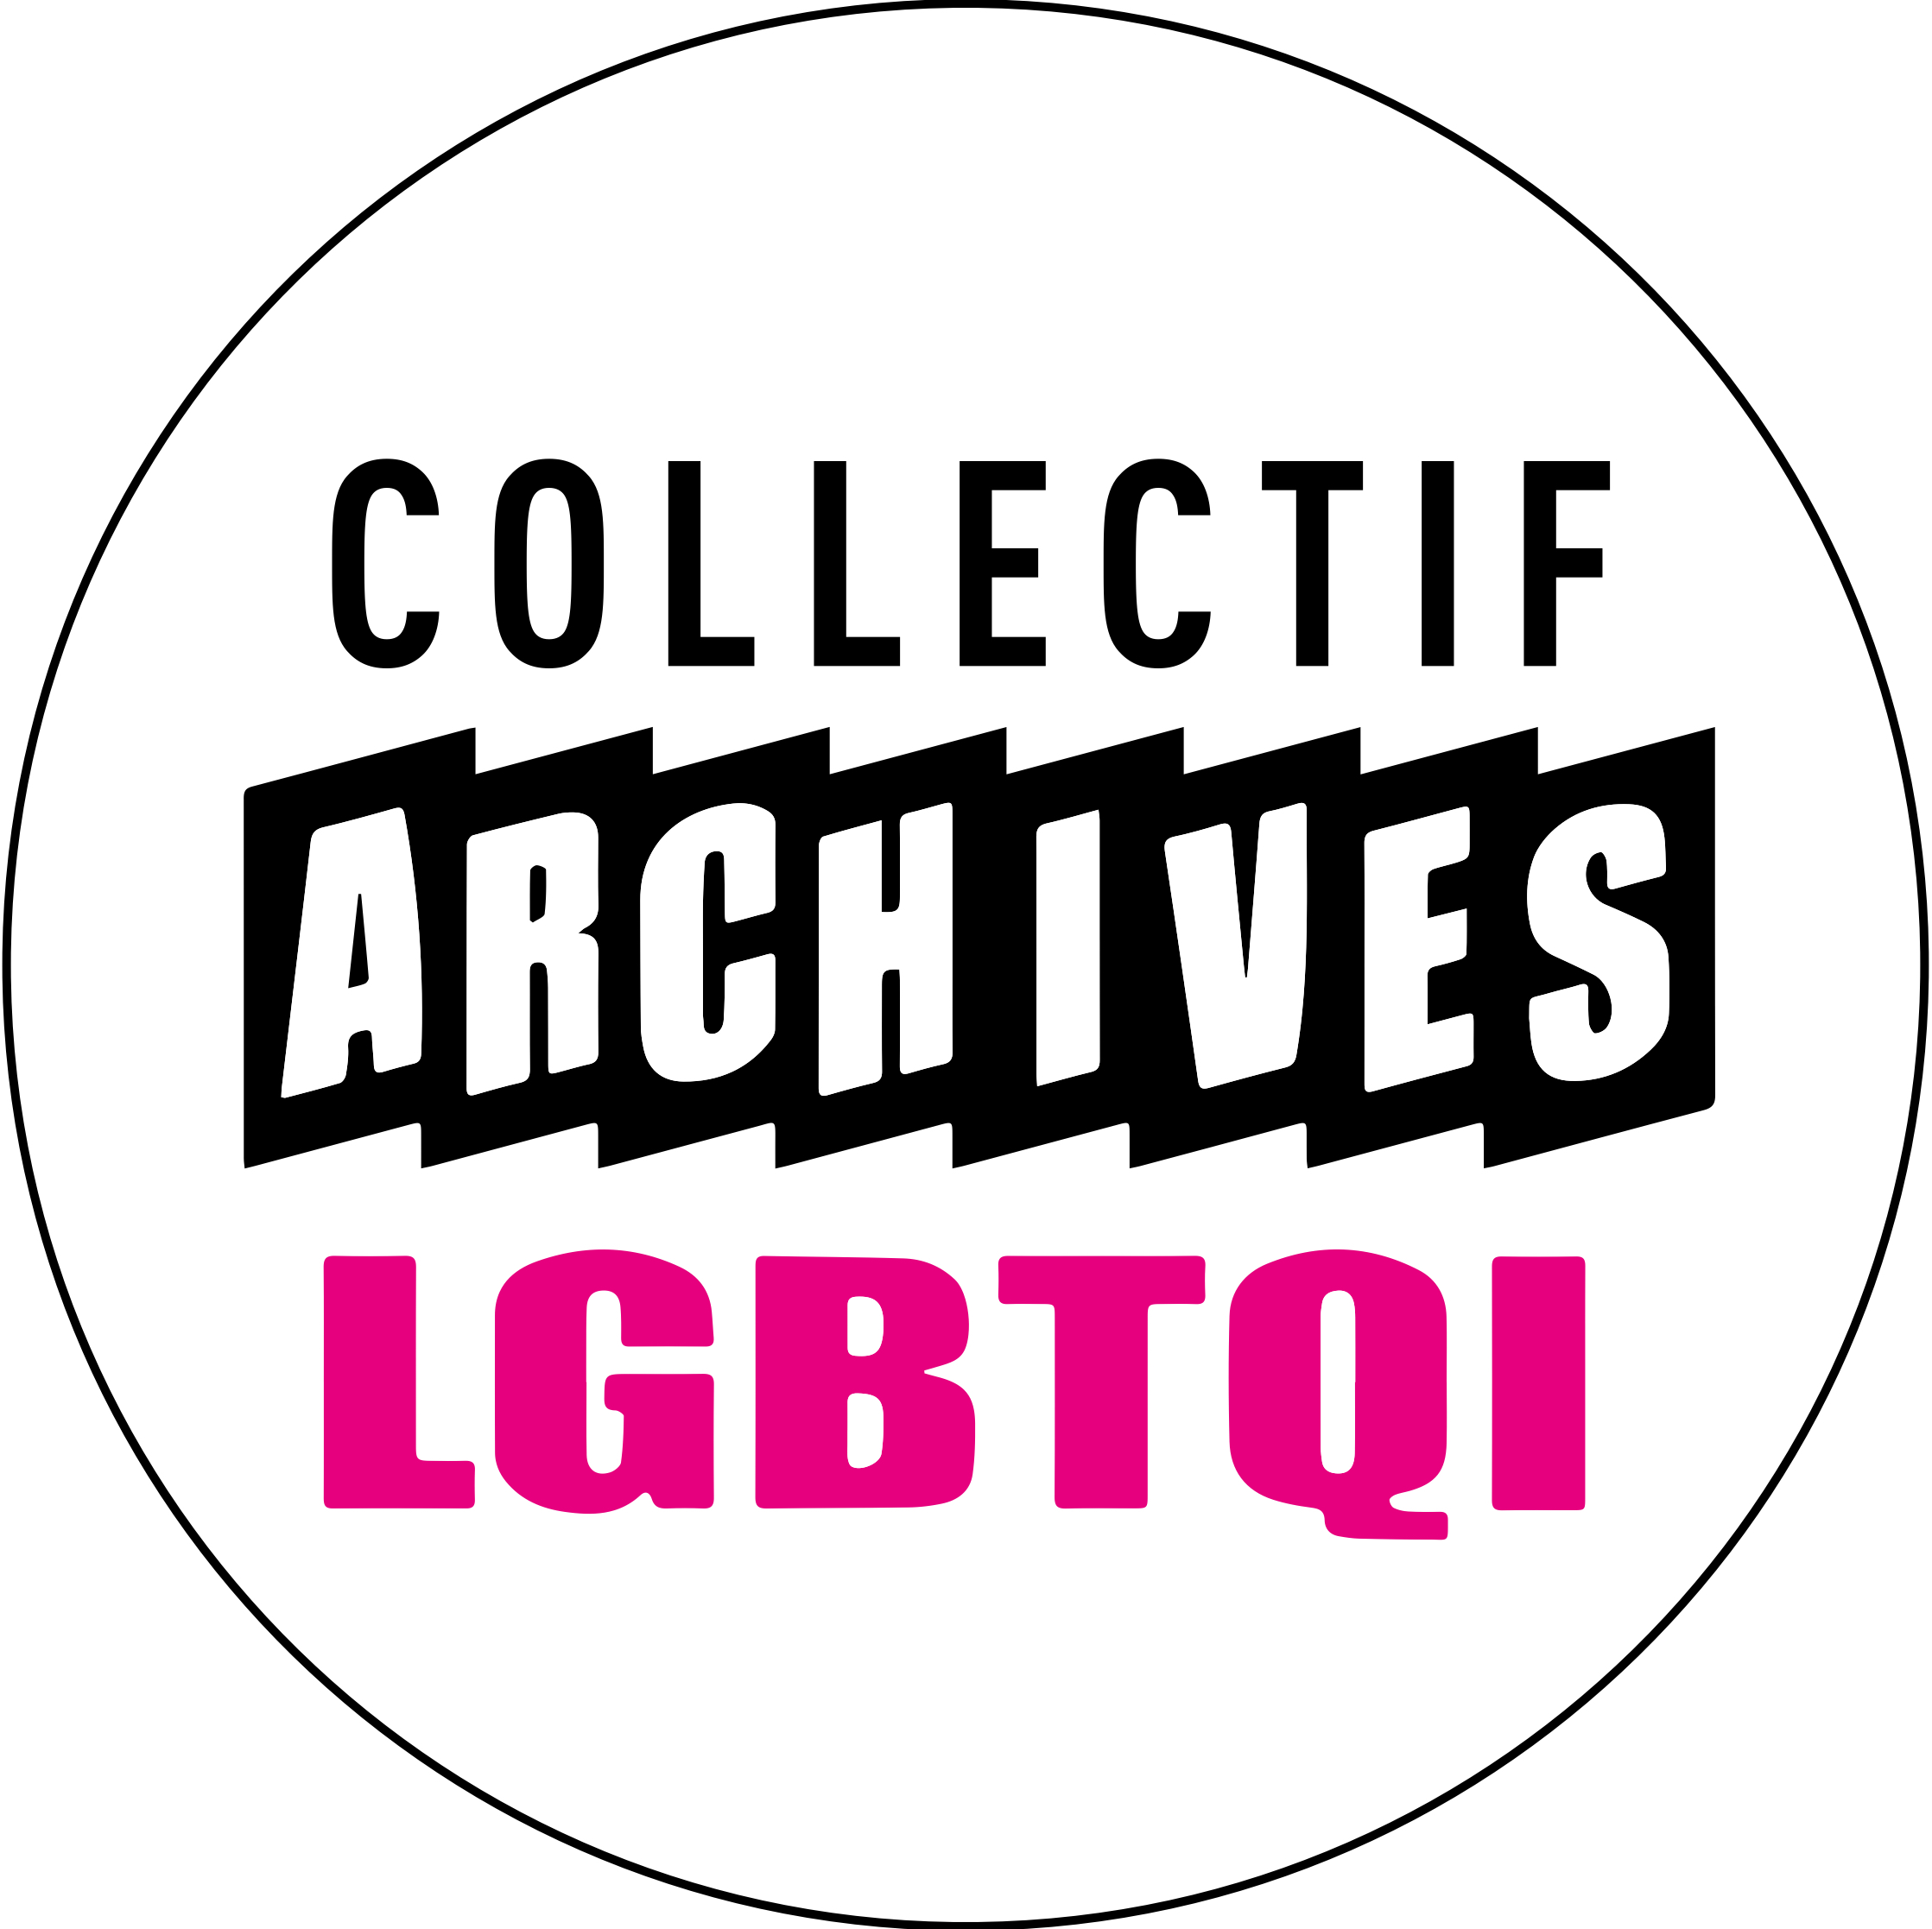 Association - Collectif Archives LGBTQI